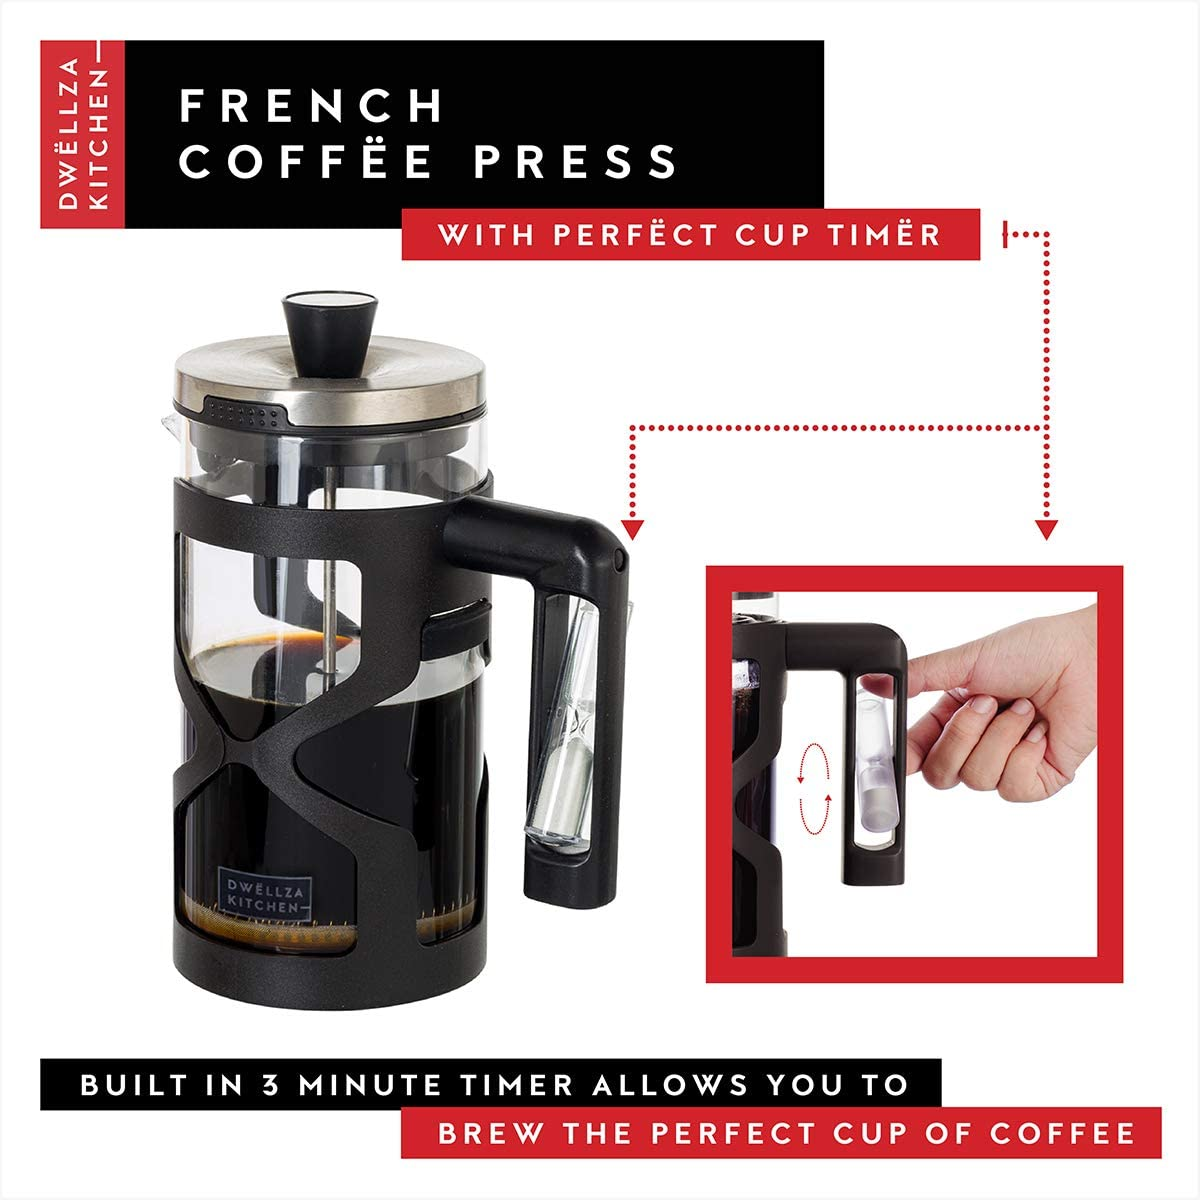 Triple Filtration System Includes 2 Additional Filters DW/ËLLZA KITCHEN French Press Coffee Maker with Hourglass Timer 34 Ounce Glass Coffee French Press with Black Shell Protecting